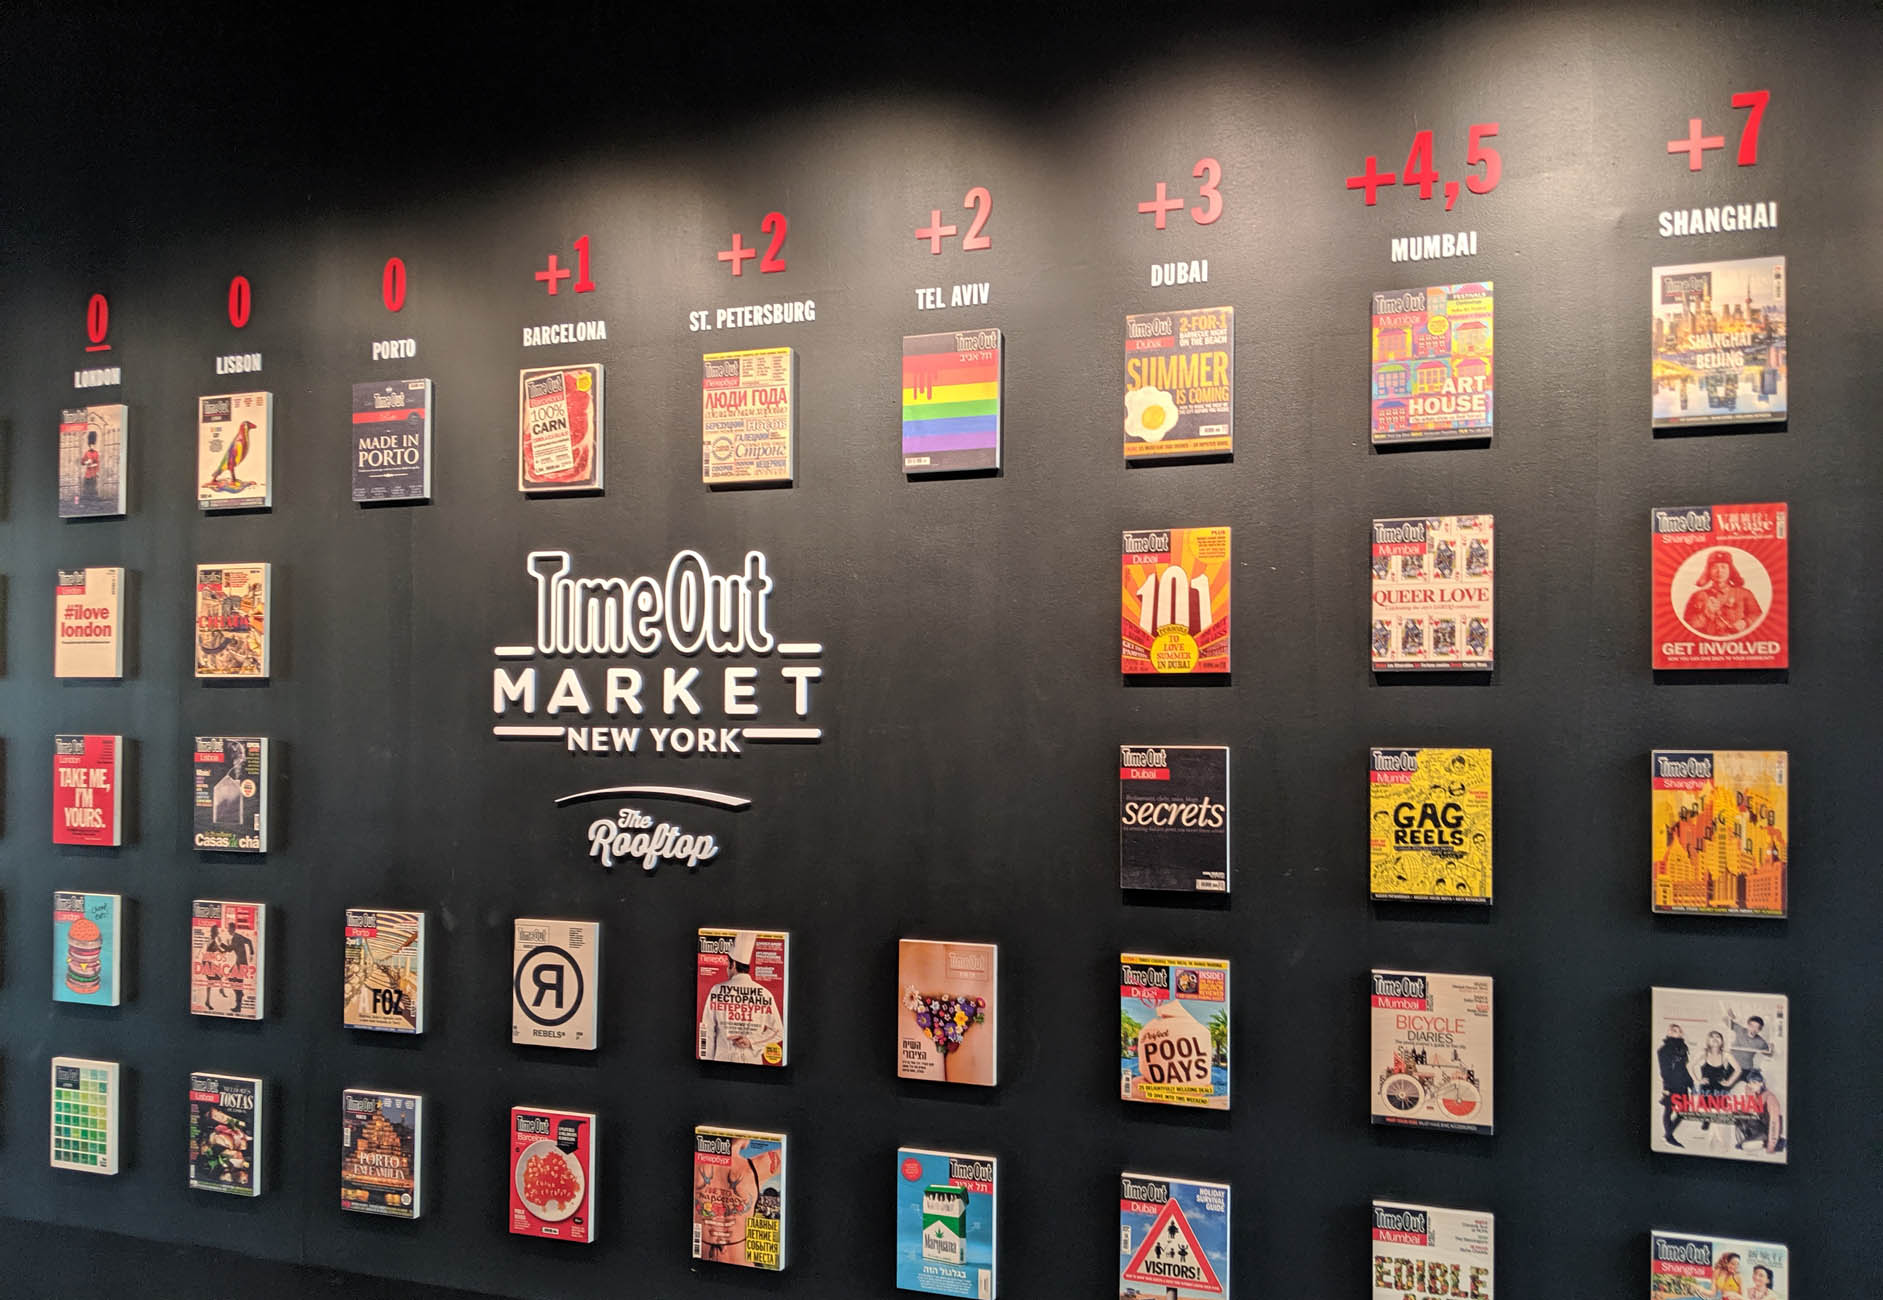 Time Out Market Magazine Cover Wall